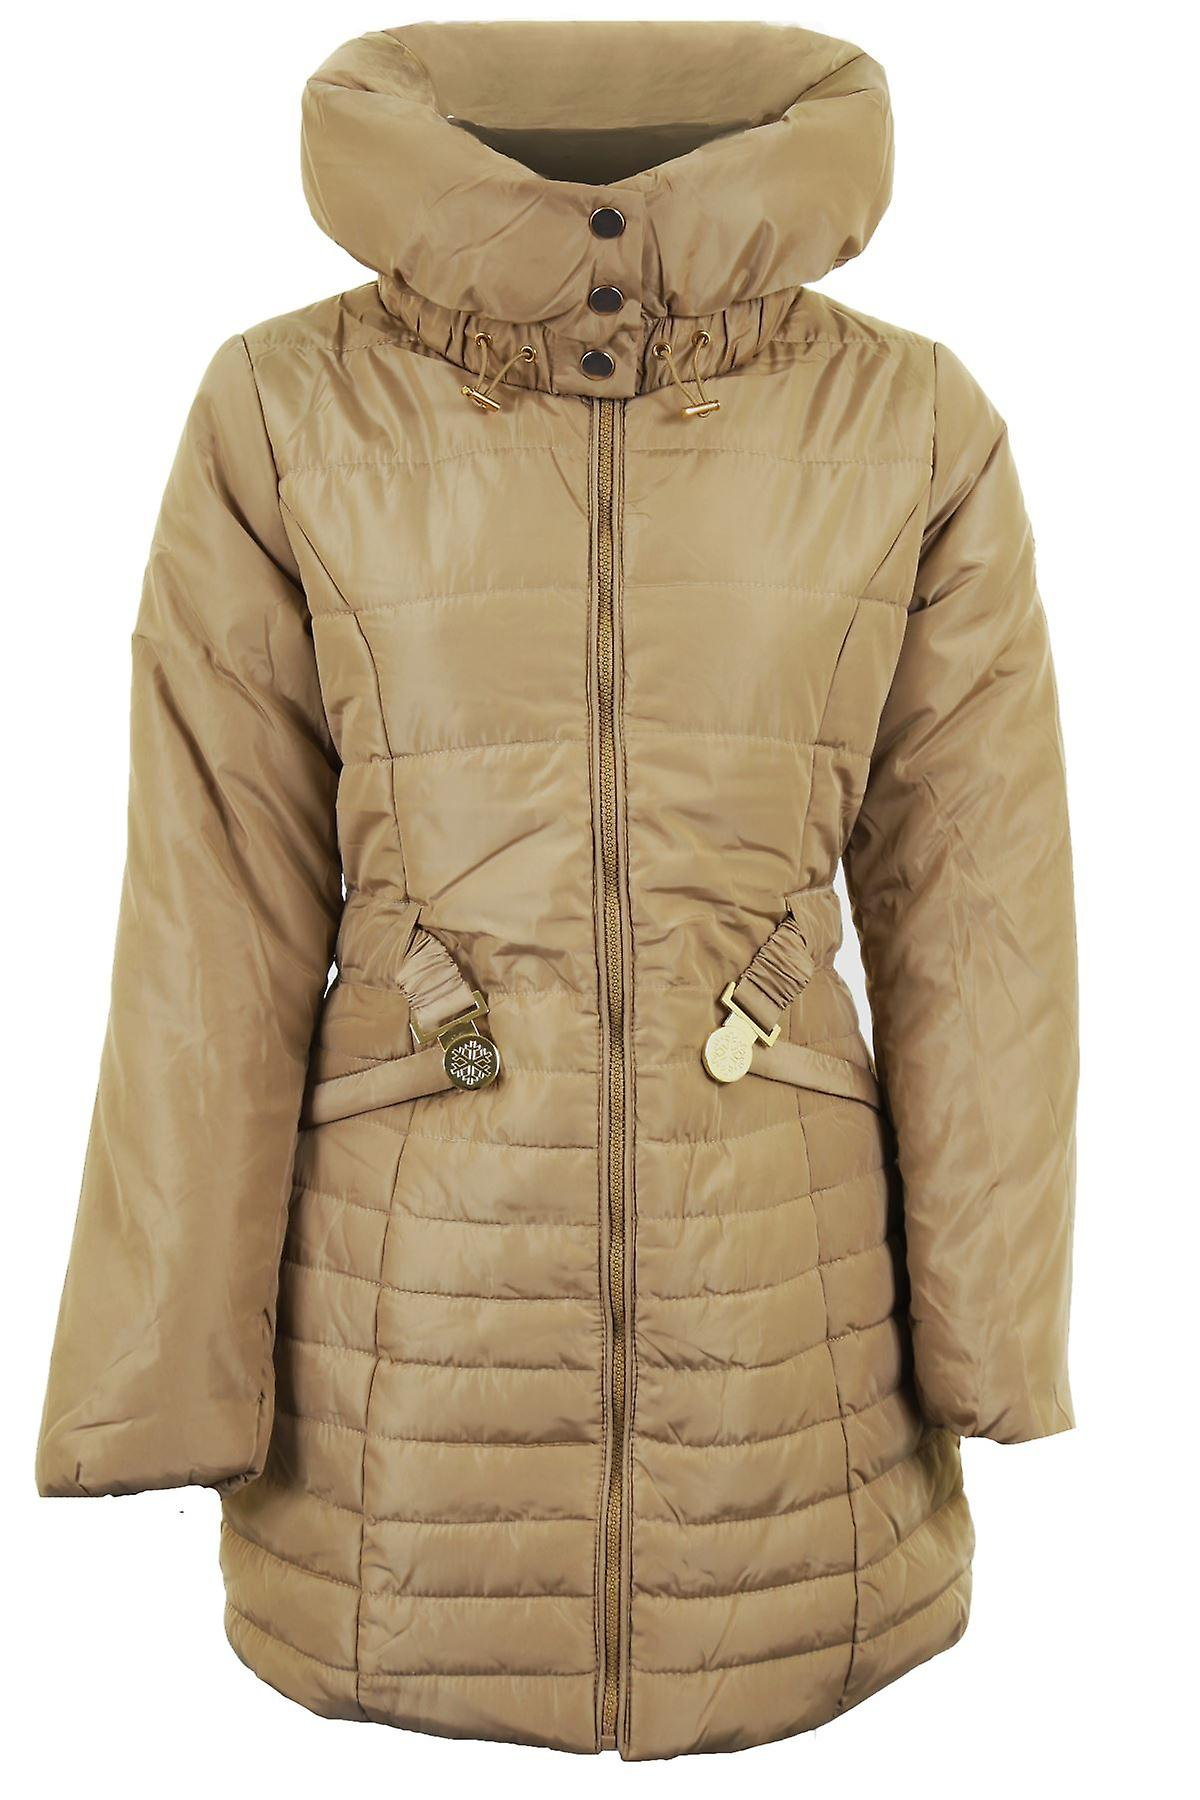 sale online super cheap sale usa online Ladies Quilted Padded Belted Puffer Black Beige Women's Winter Jacket Coat